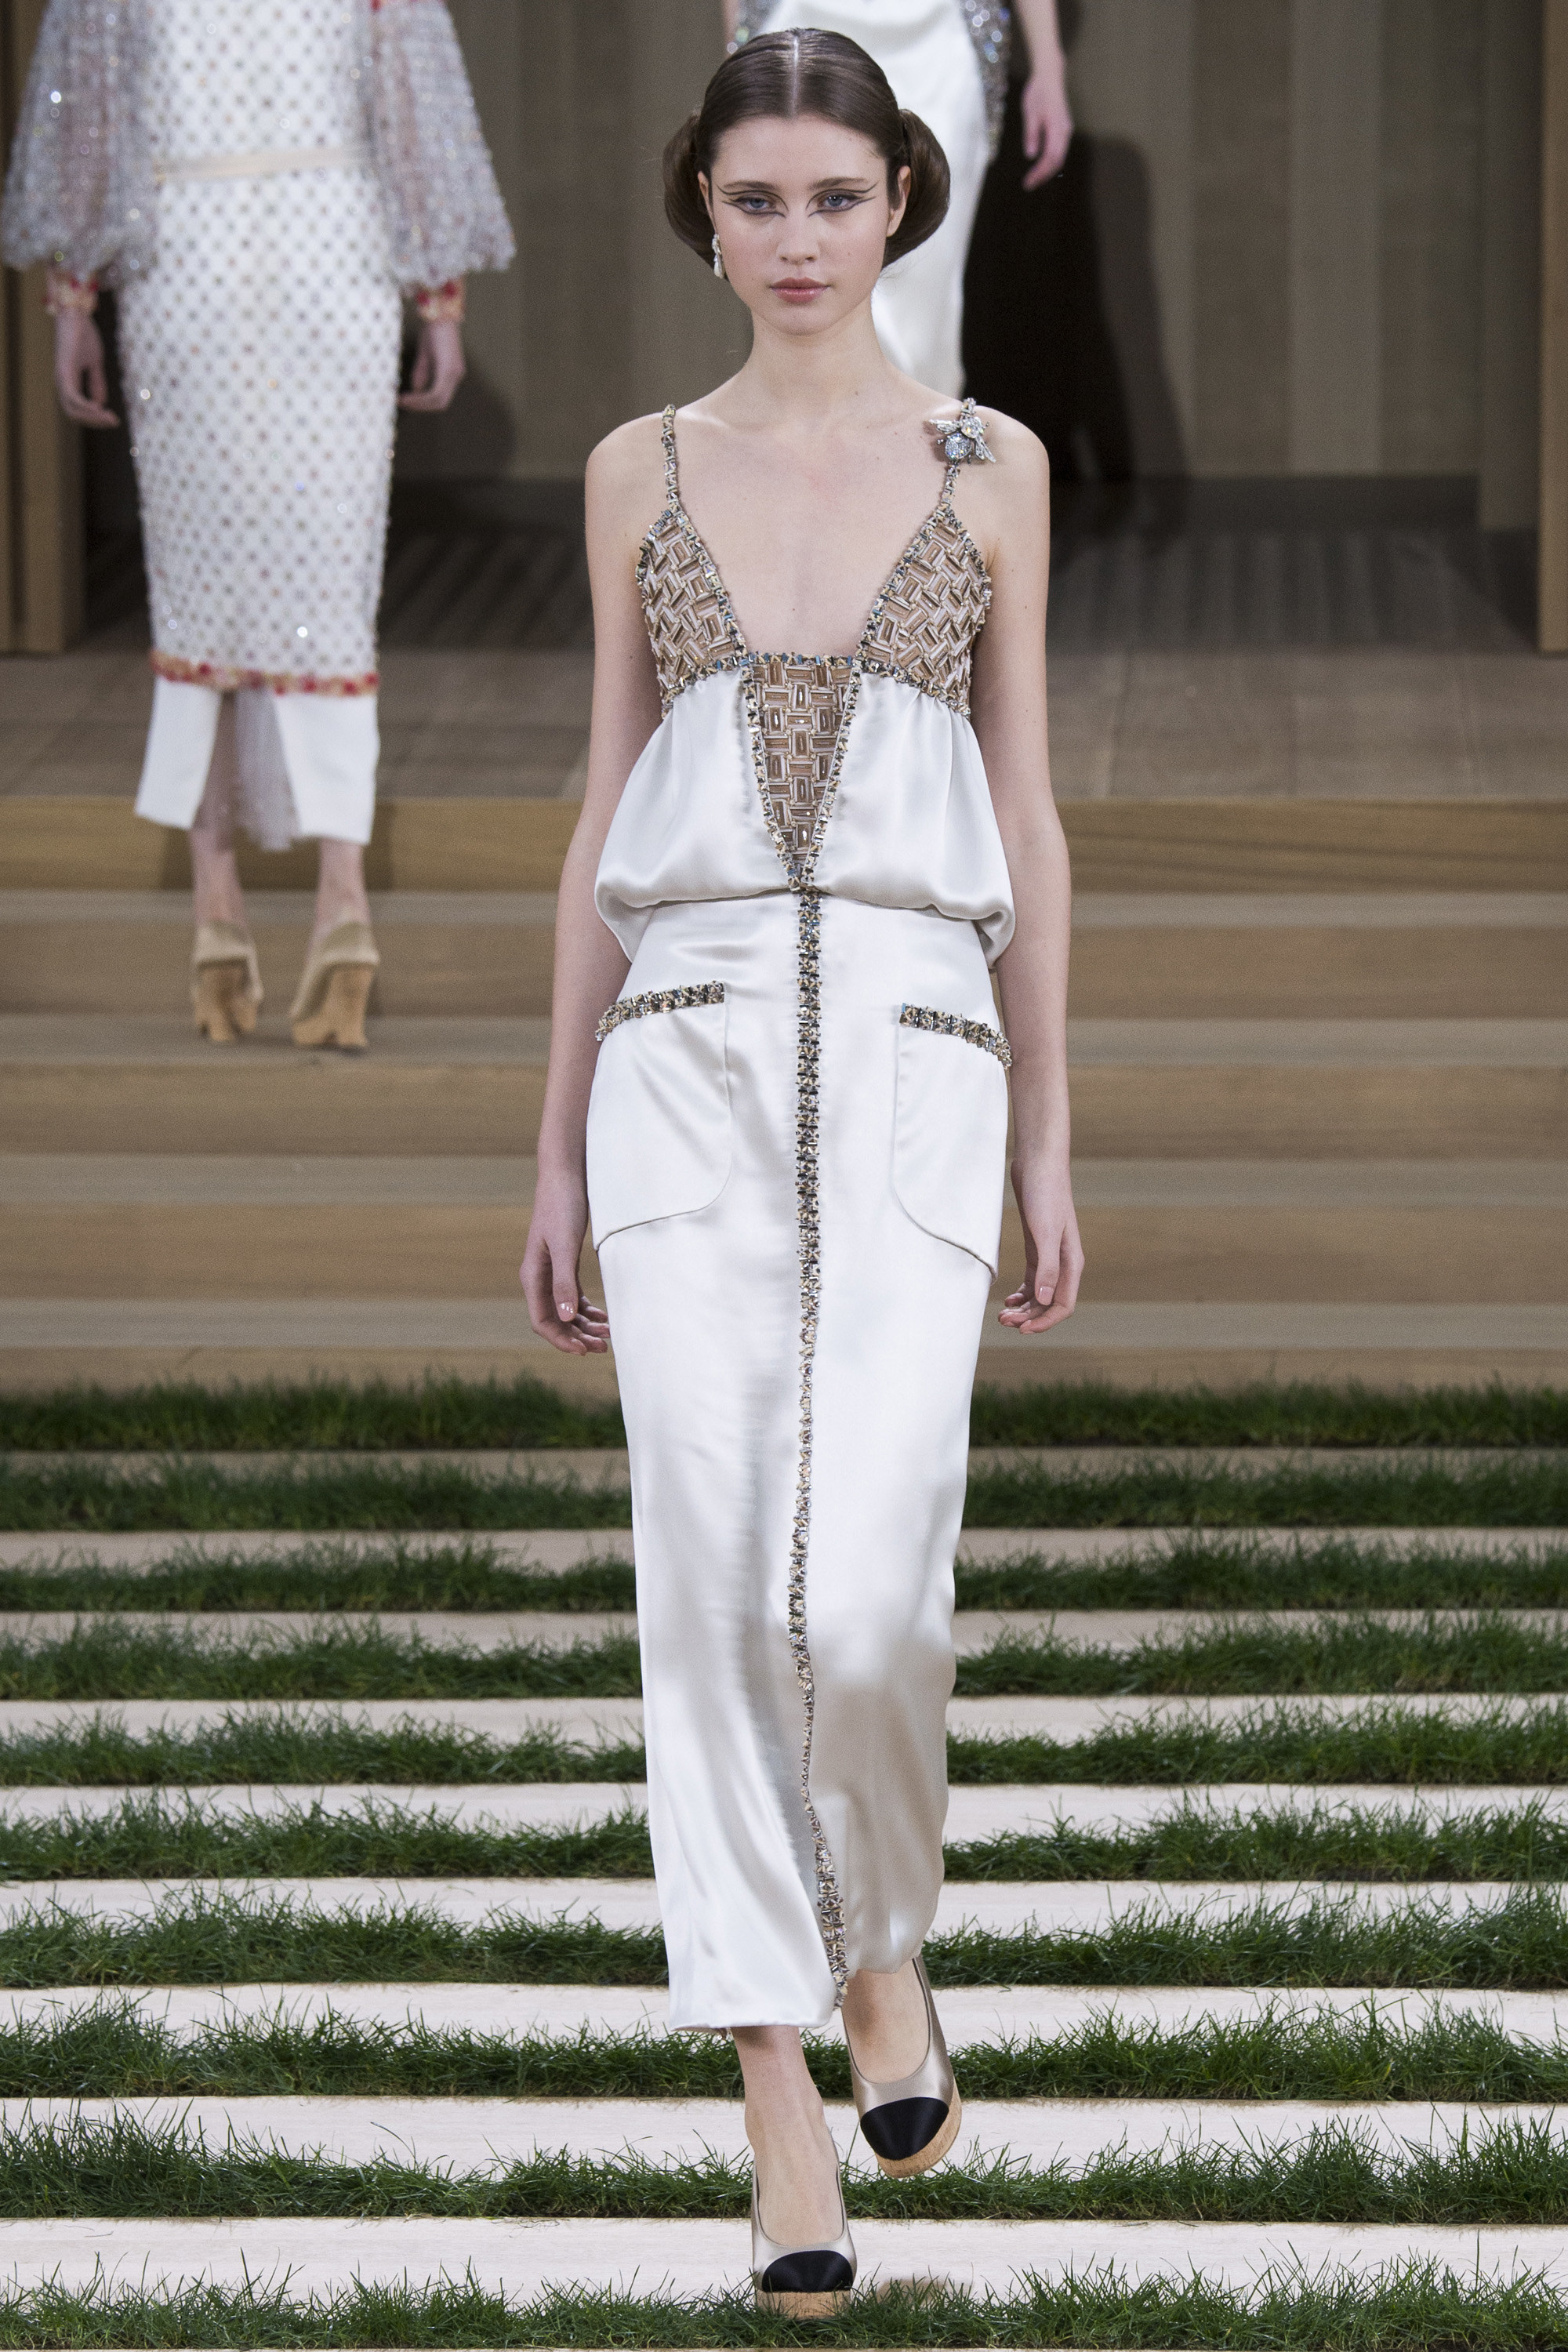 Chanel-Couture-Spring-2016-Paris-Fashion-Week-18.jpg